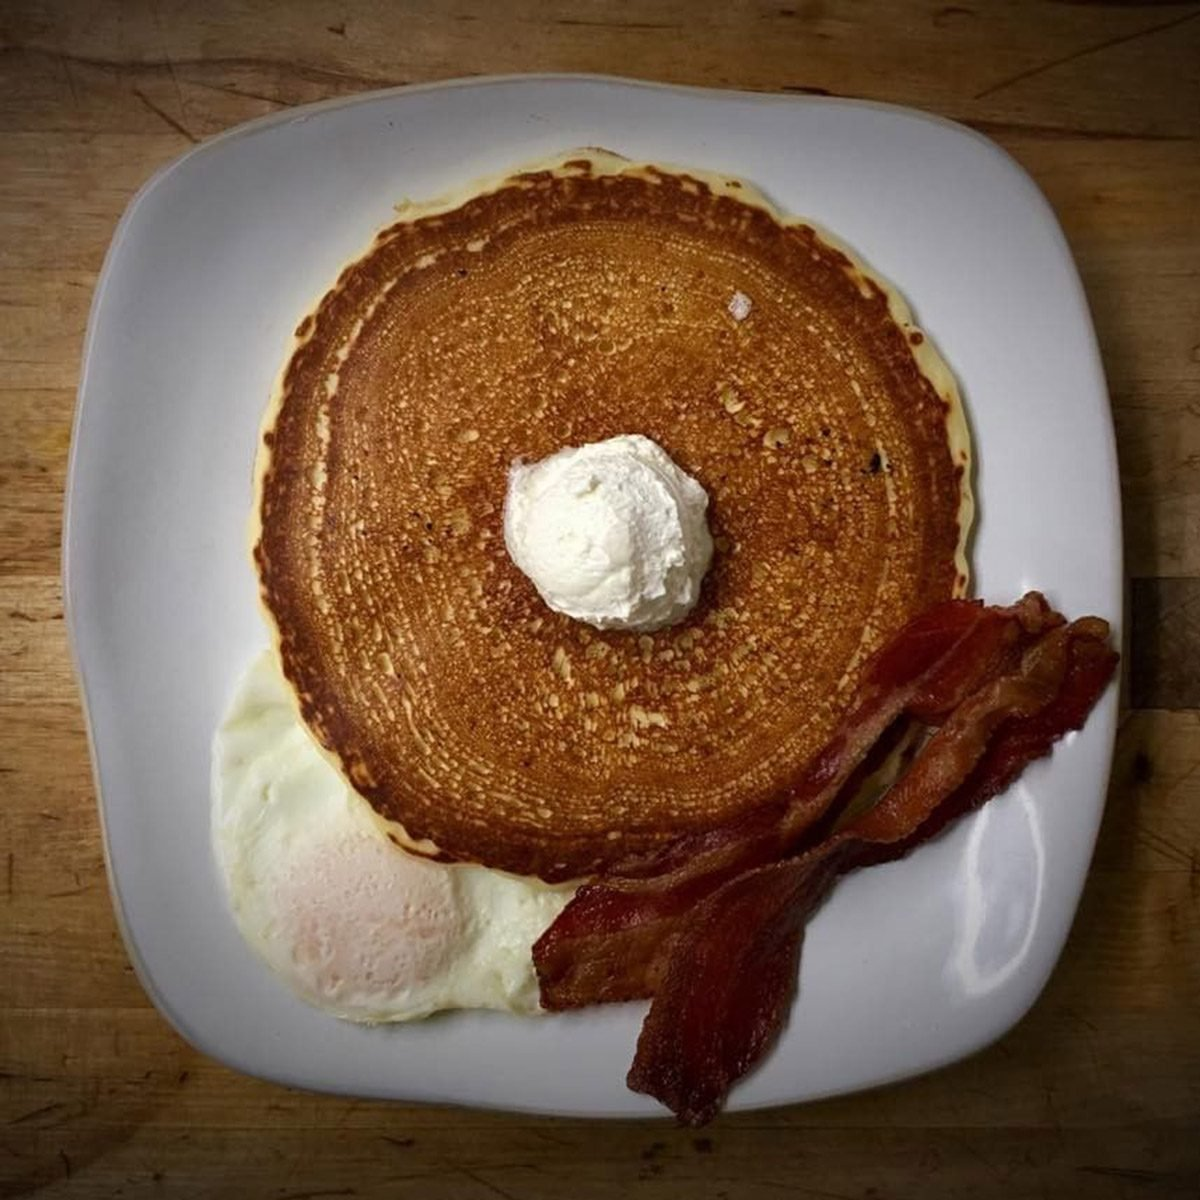 Tally's Silver Spoon, Rapid City pancake